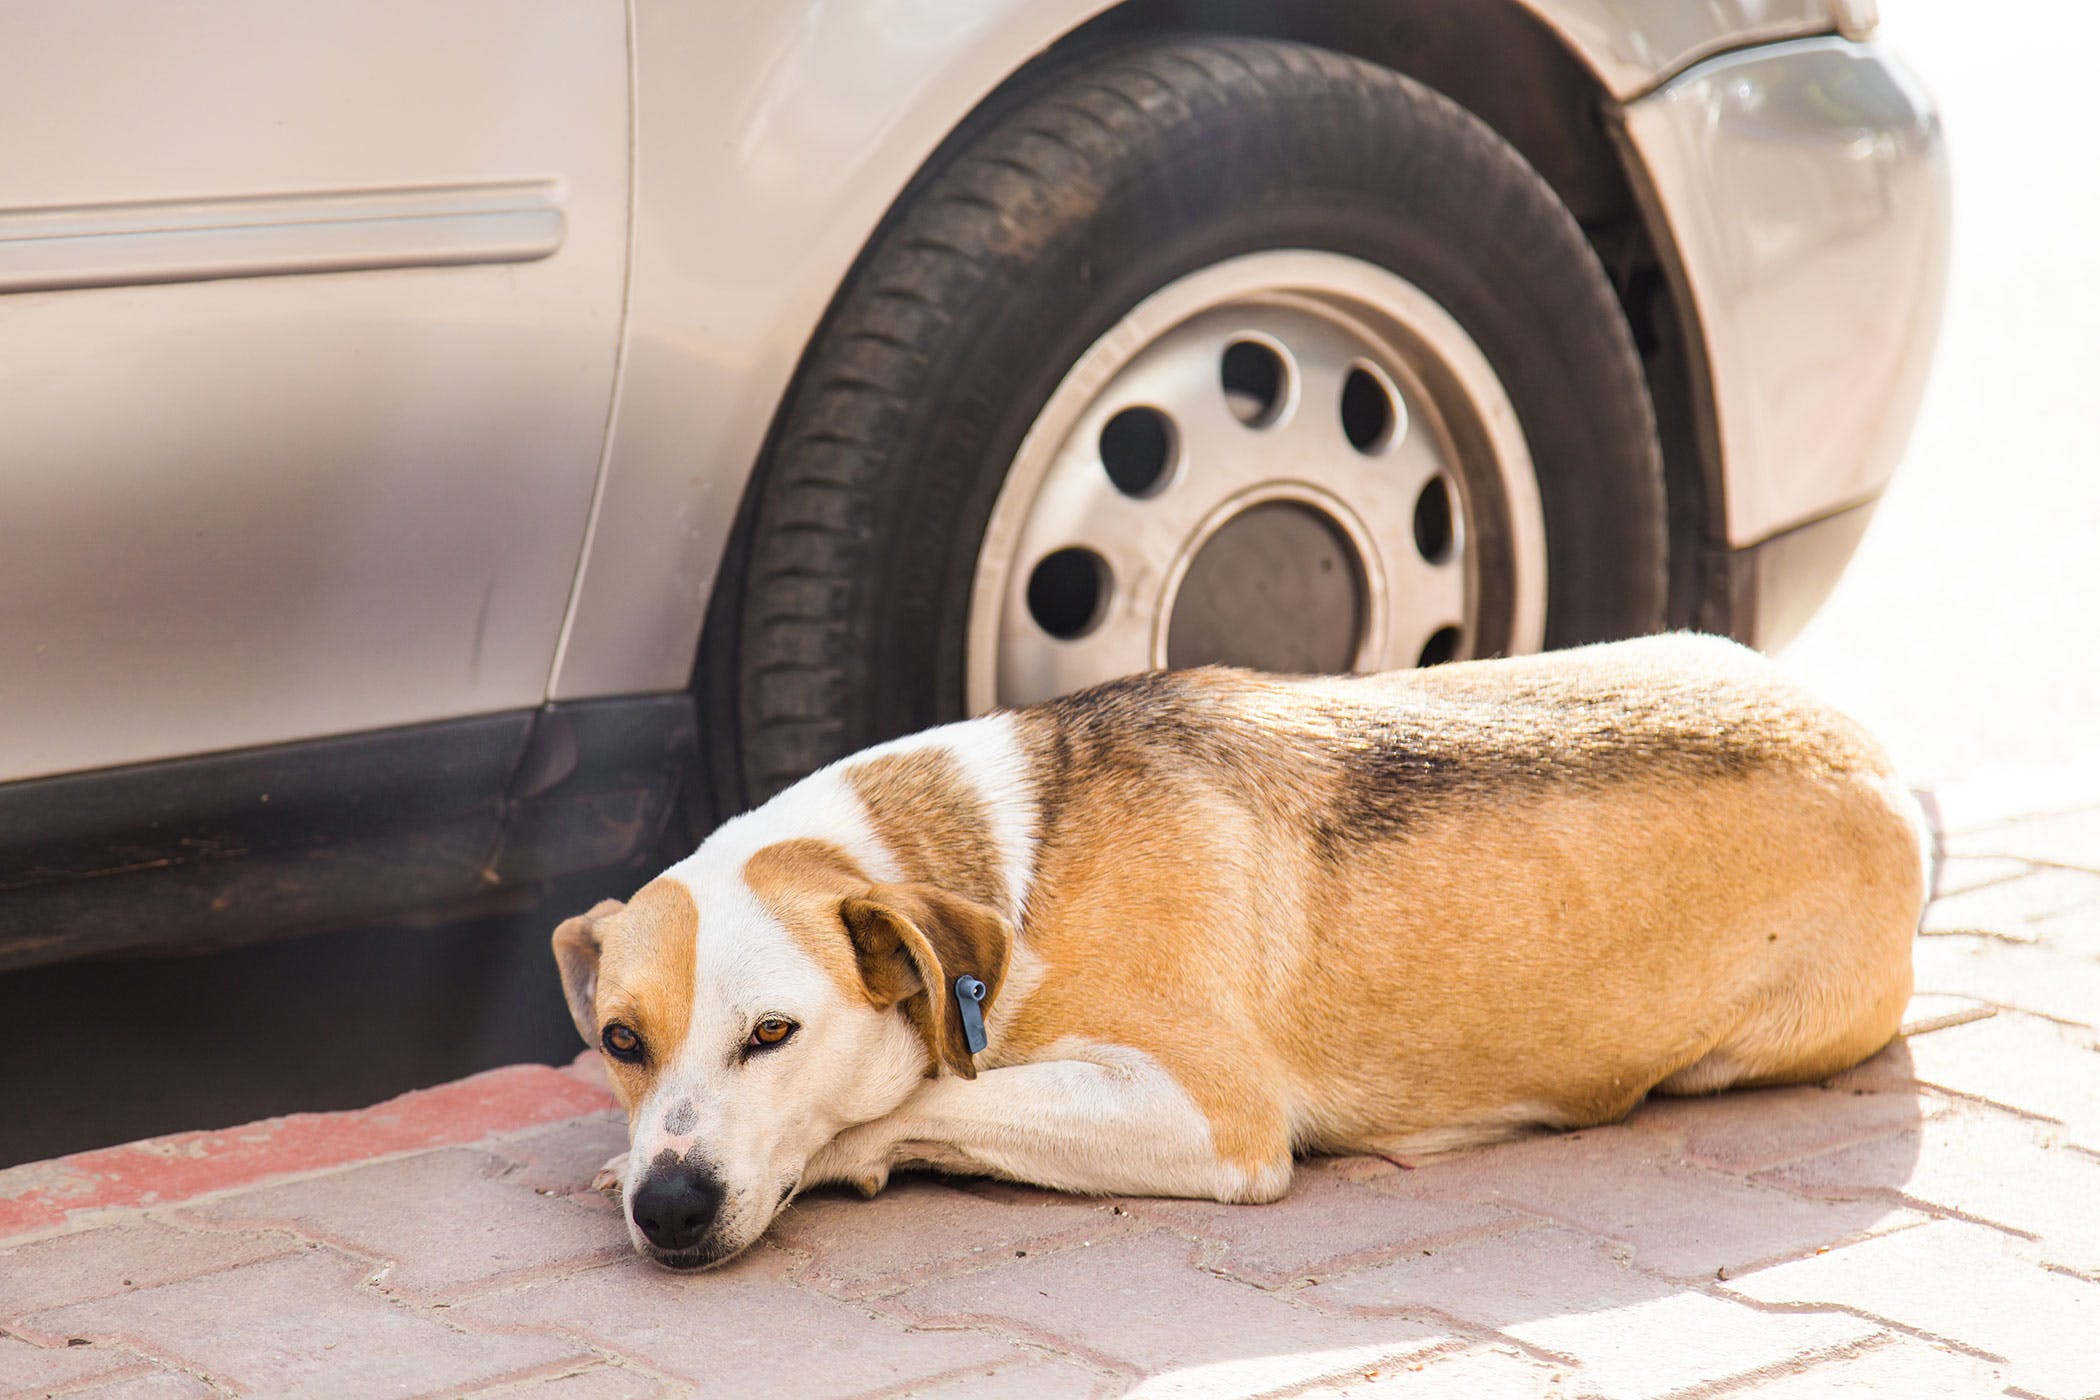 Bacterial Infection Pyelonephritis Of The Kidneys In Dogs Symptoms Causes Diagnosis Treatment Recovery Management Cost